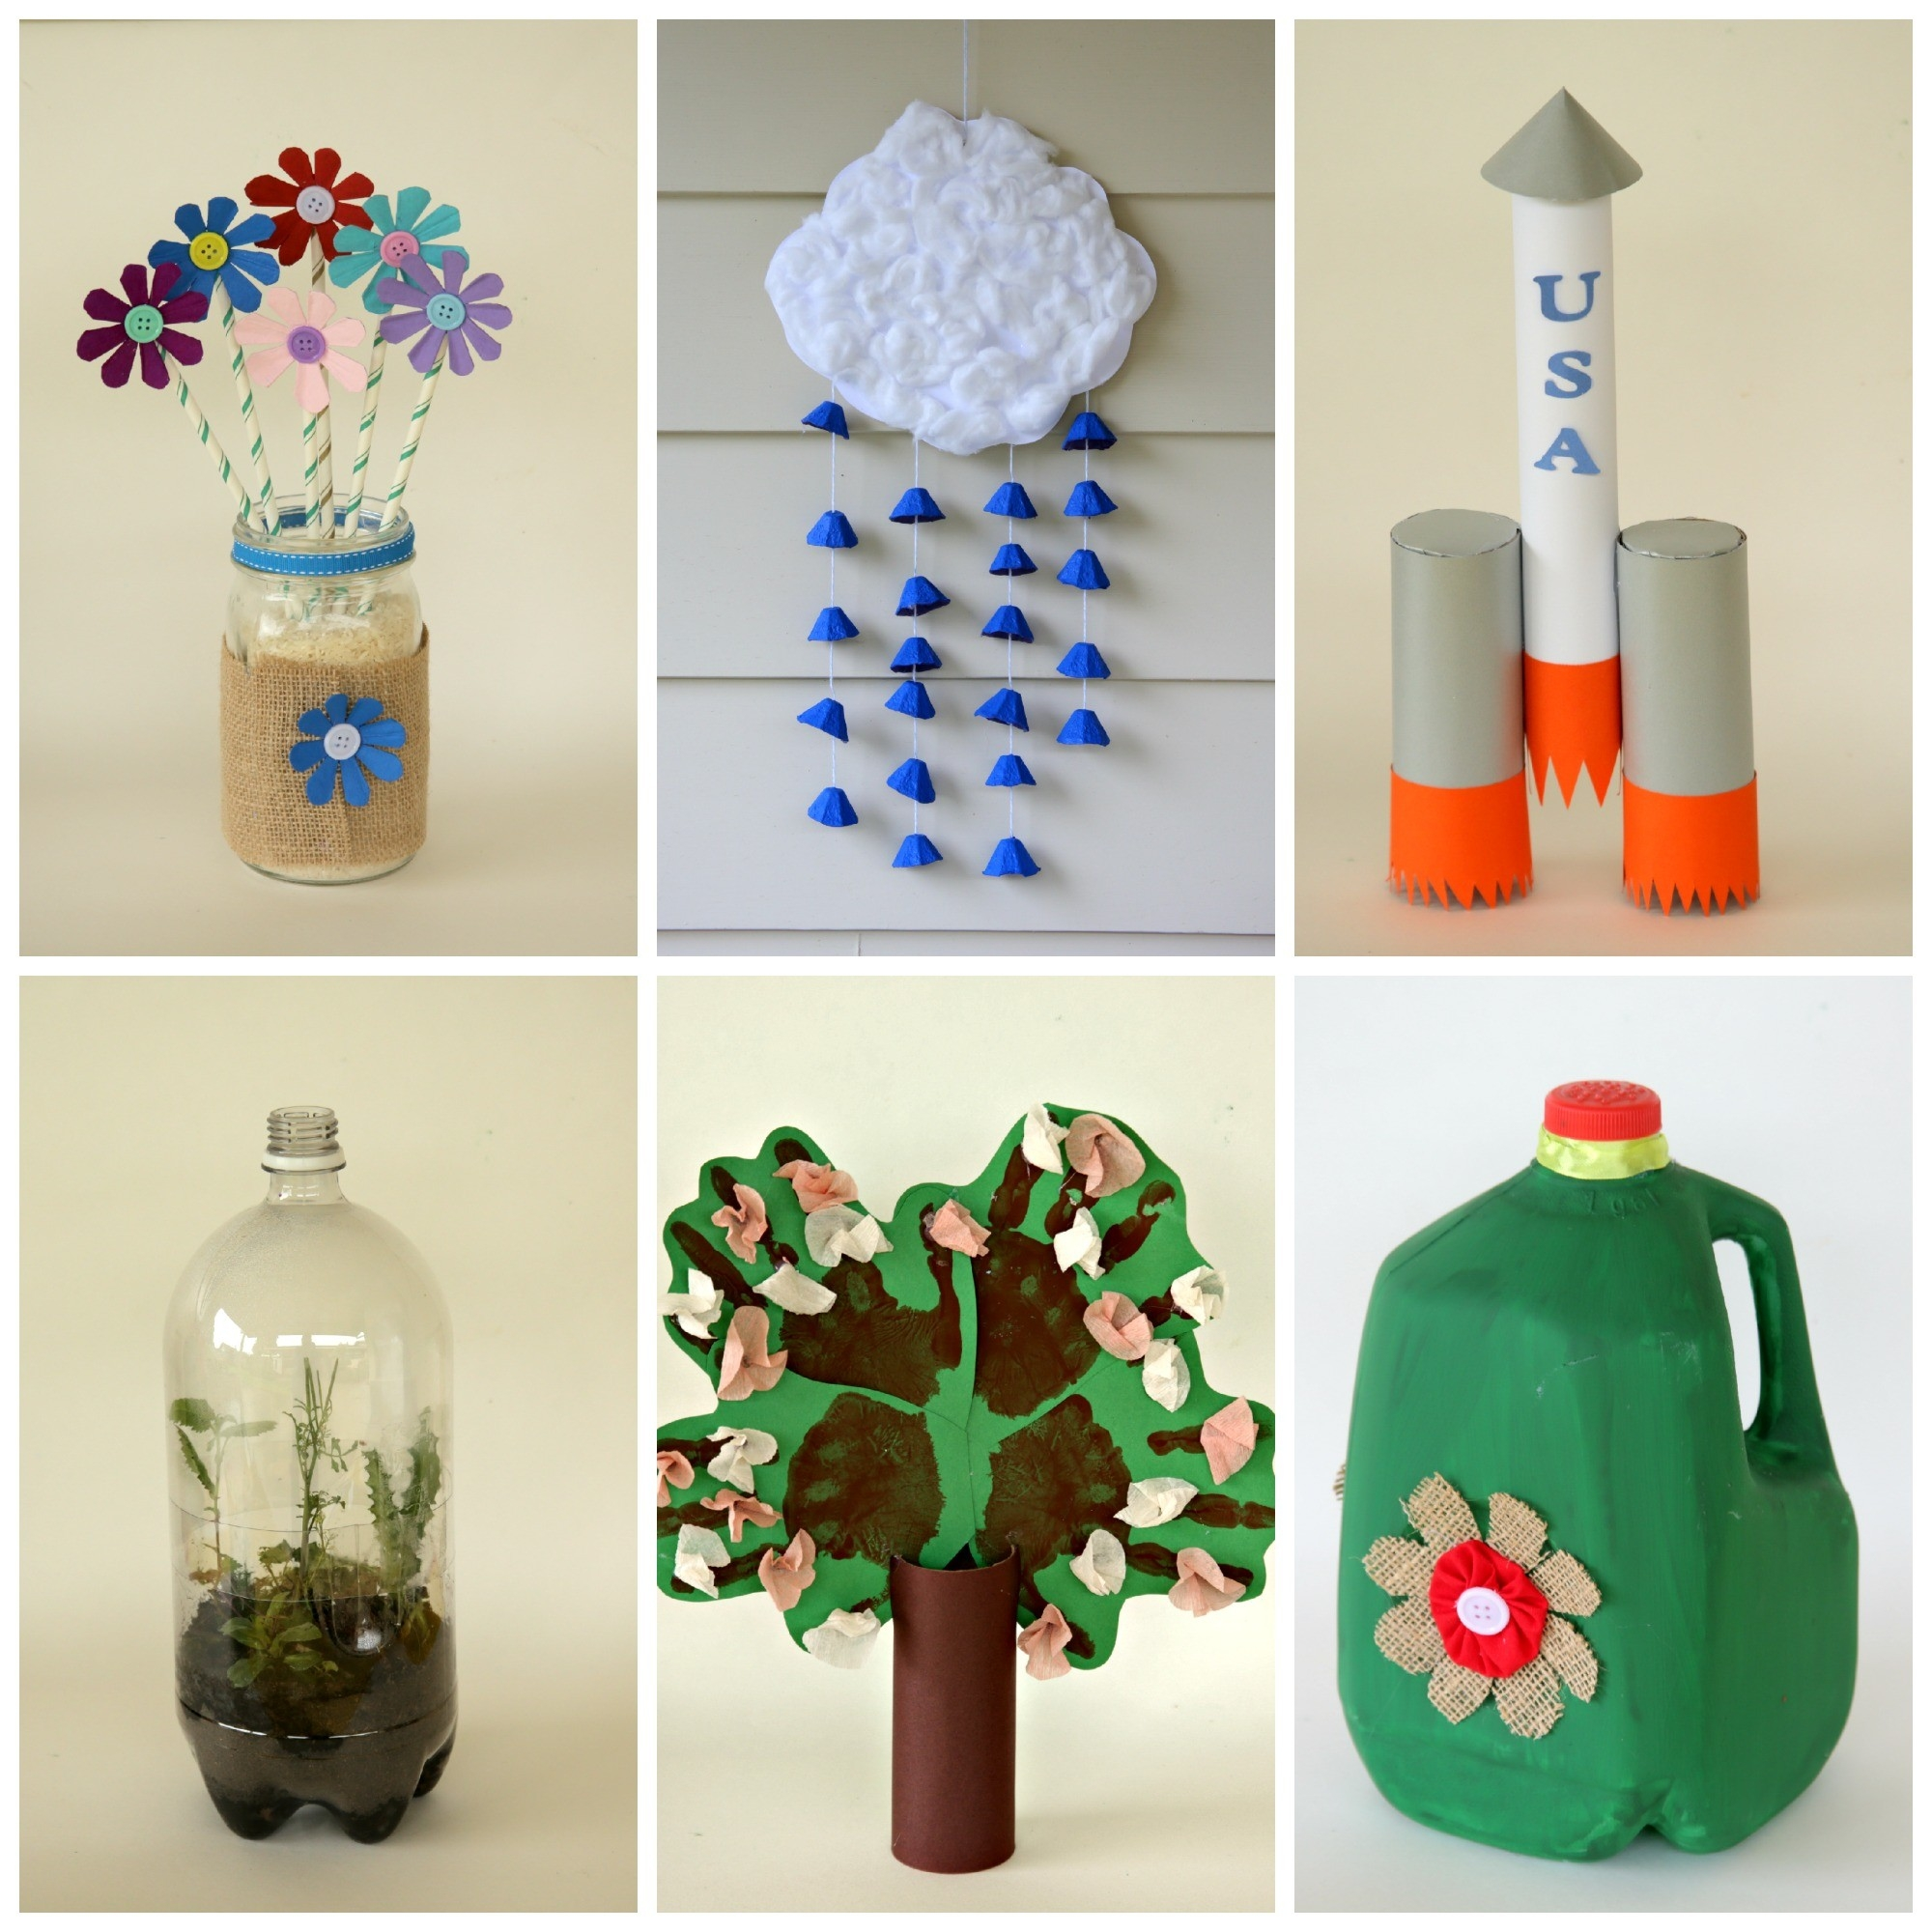 6 Earth Day Crafts From Recycled Materials · Kix Cereal pertaining to Art And Craft Ideas For Kids Using Recycled Materials 27670